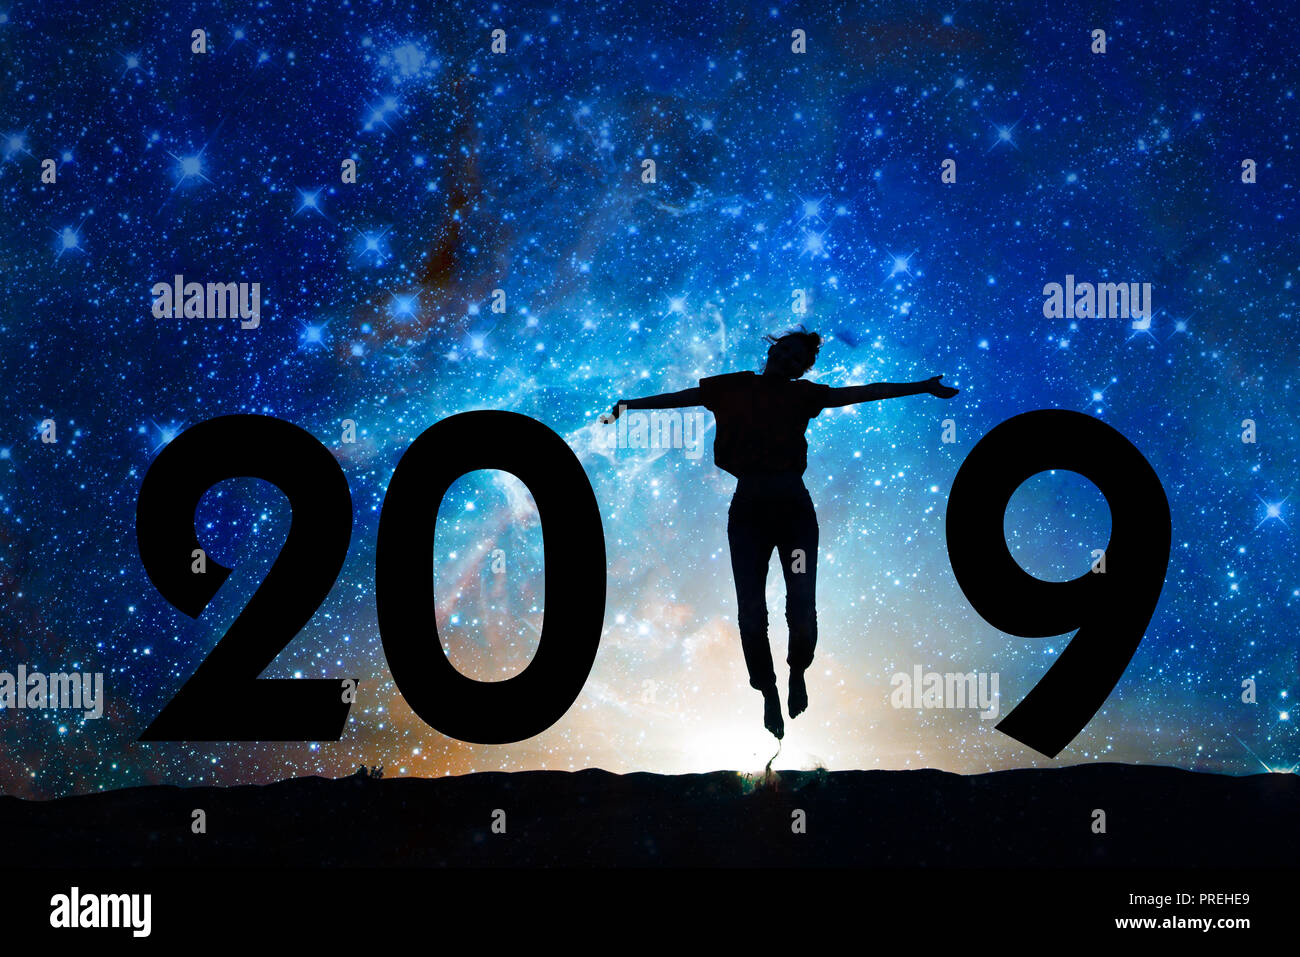 2019 new year greeting card. Silhouette of a woman jumping in the ...